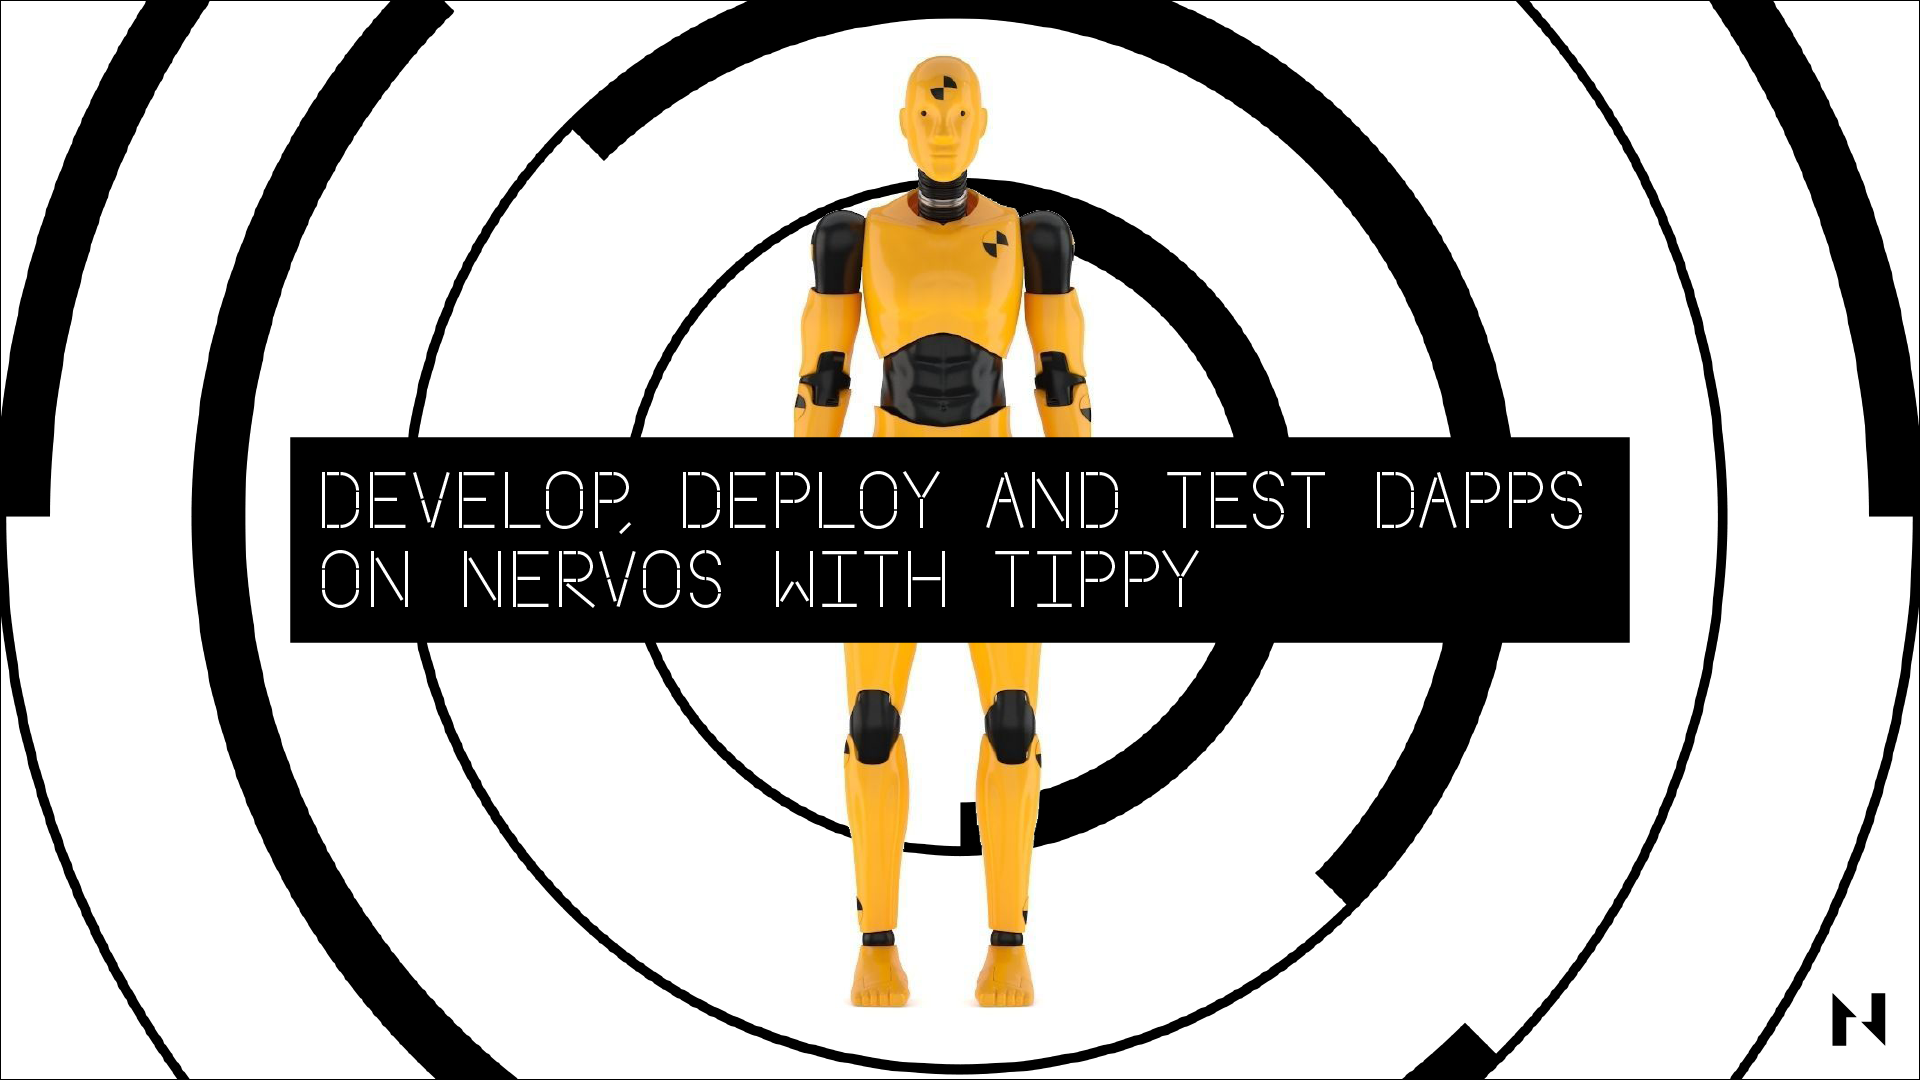 Develop and Deploy dApps on Nervos with Tippy   Nervos Network